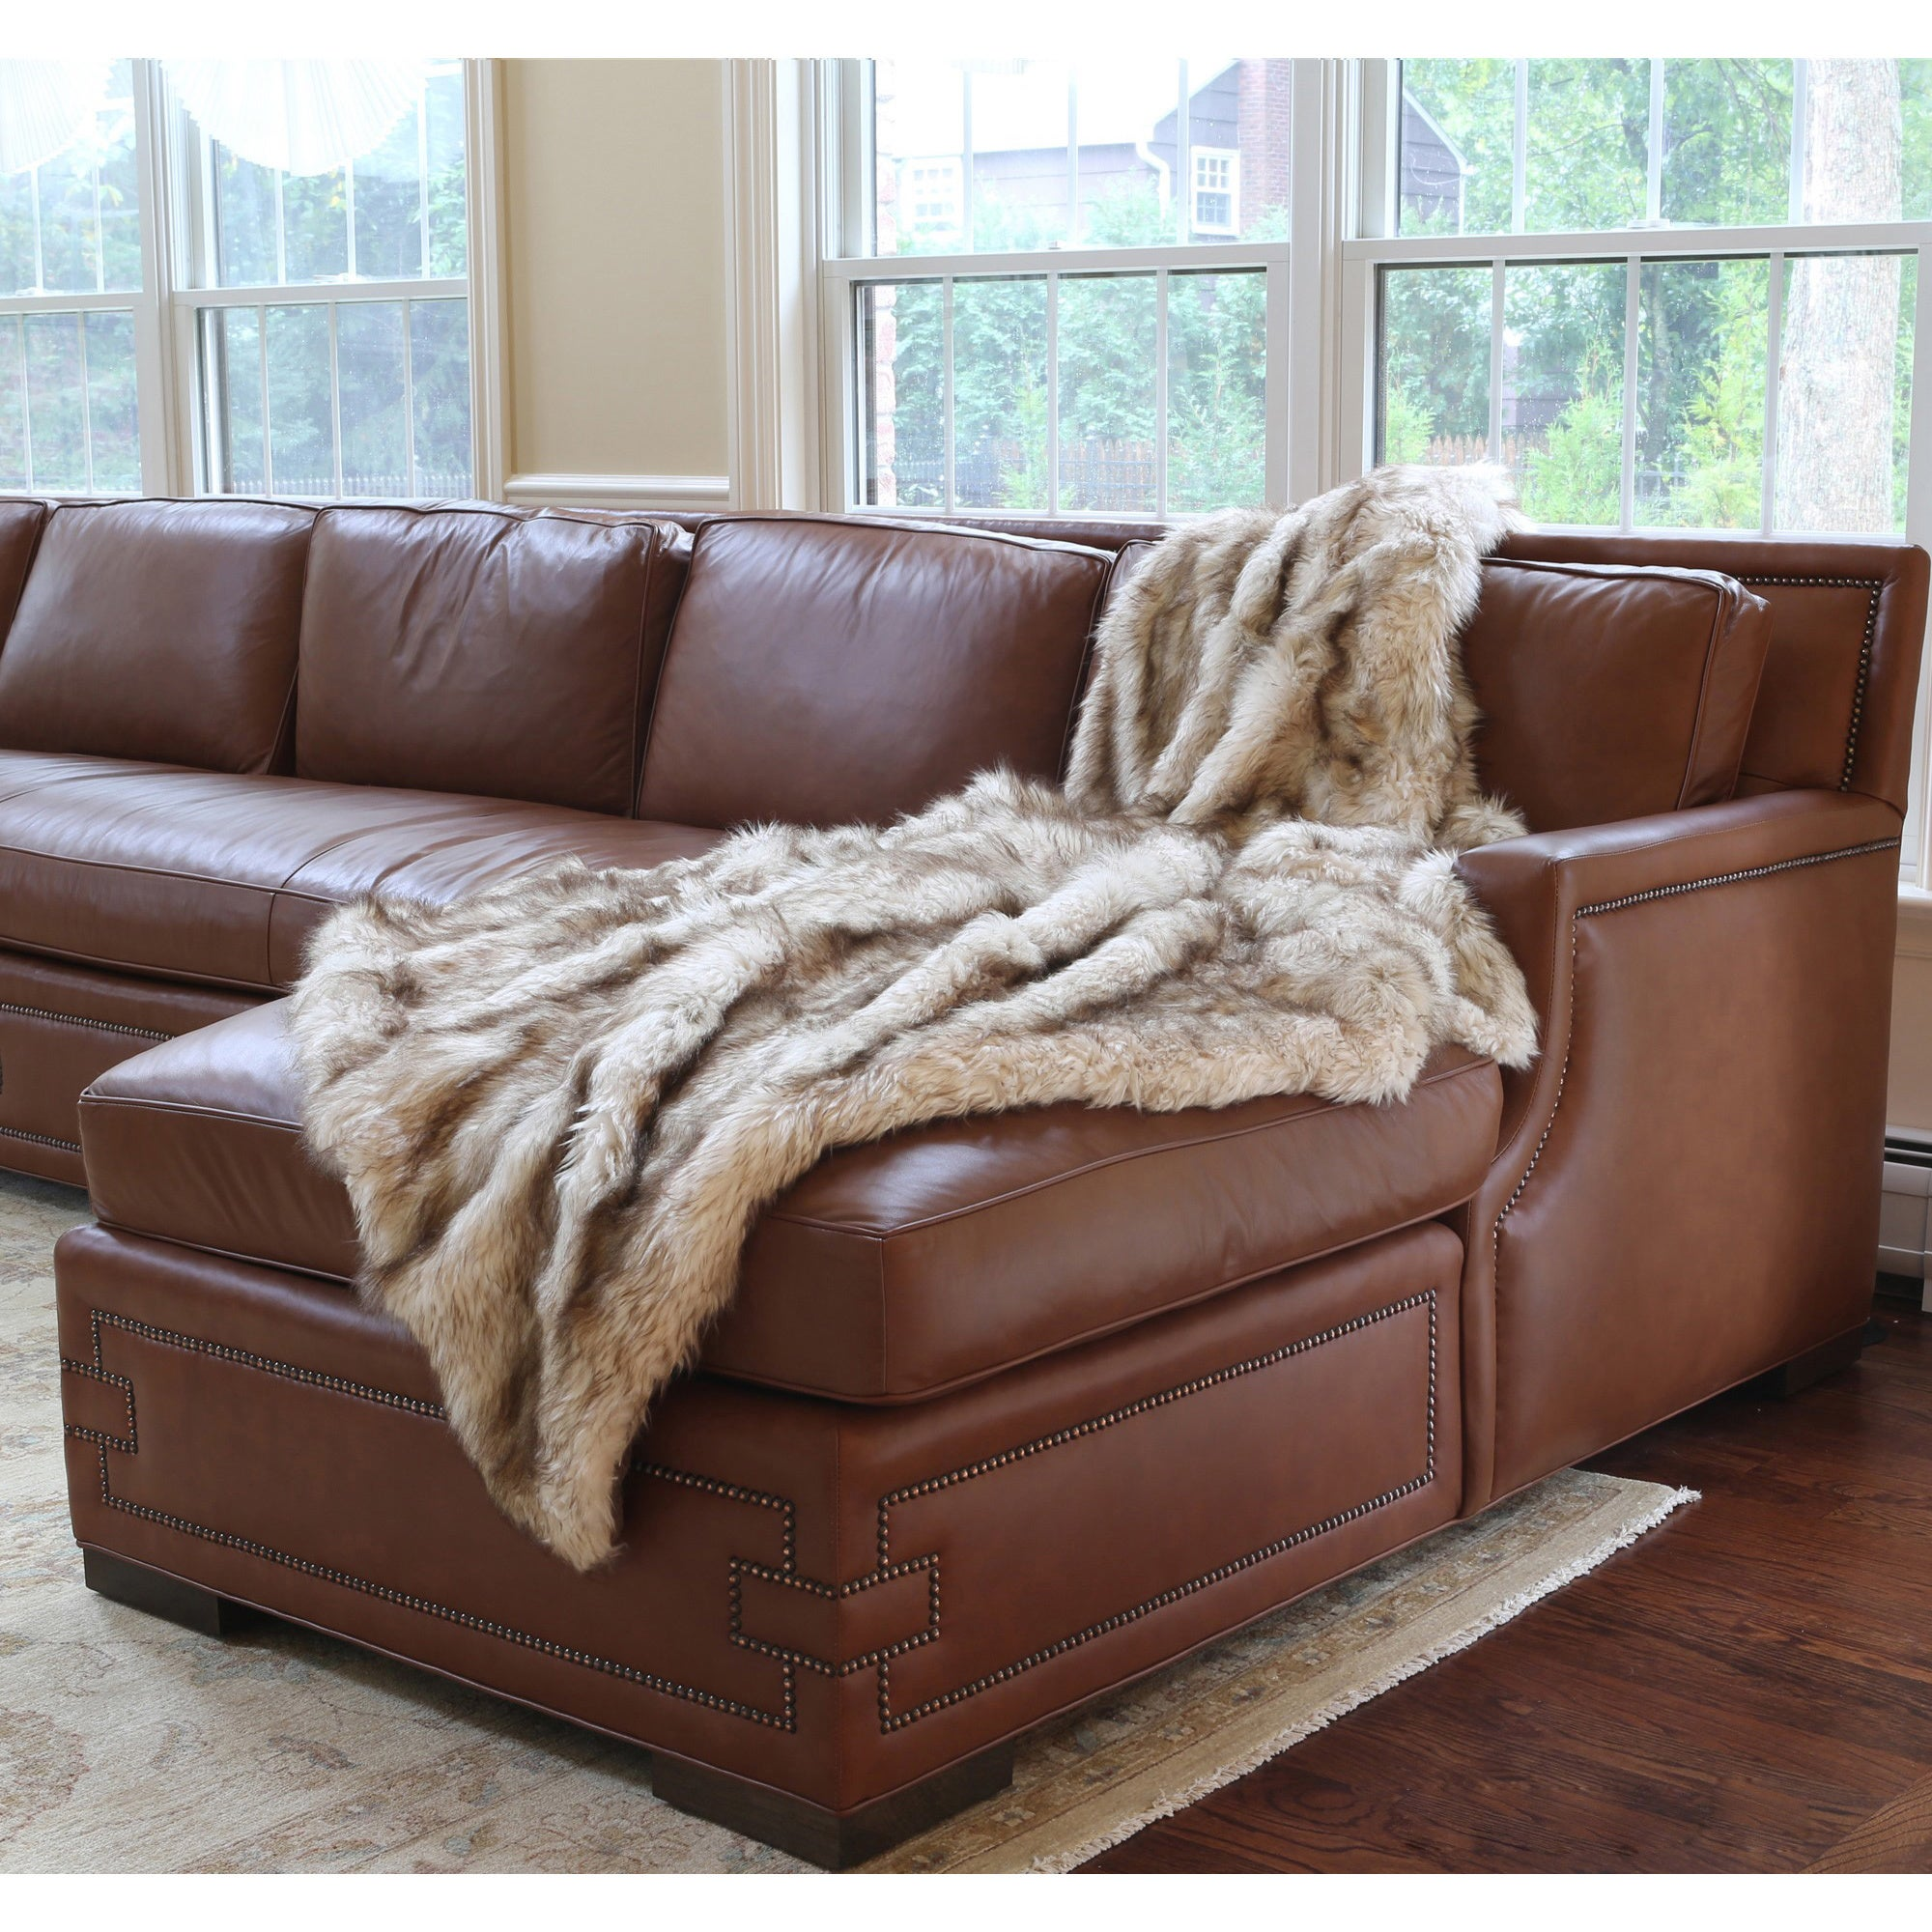 Charmant Shop Aurora Home Wild Mannered Luxury Long Hair Faux Fur 58 X 36 Inch Lap  Throw   Free Shipping Today   Overstock.com   7278785